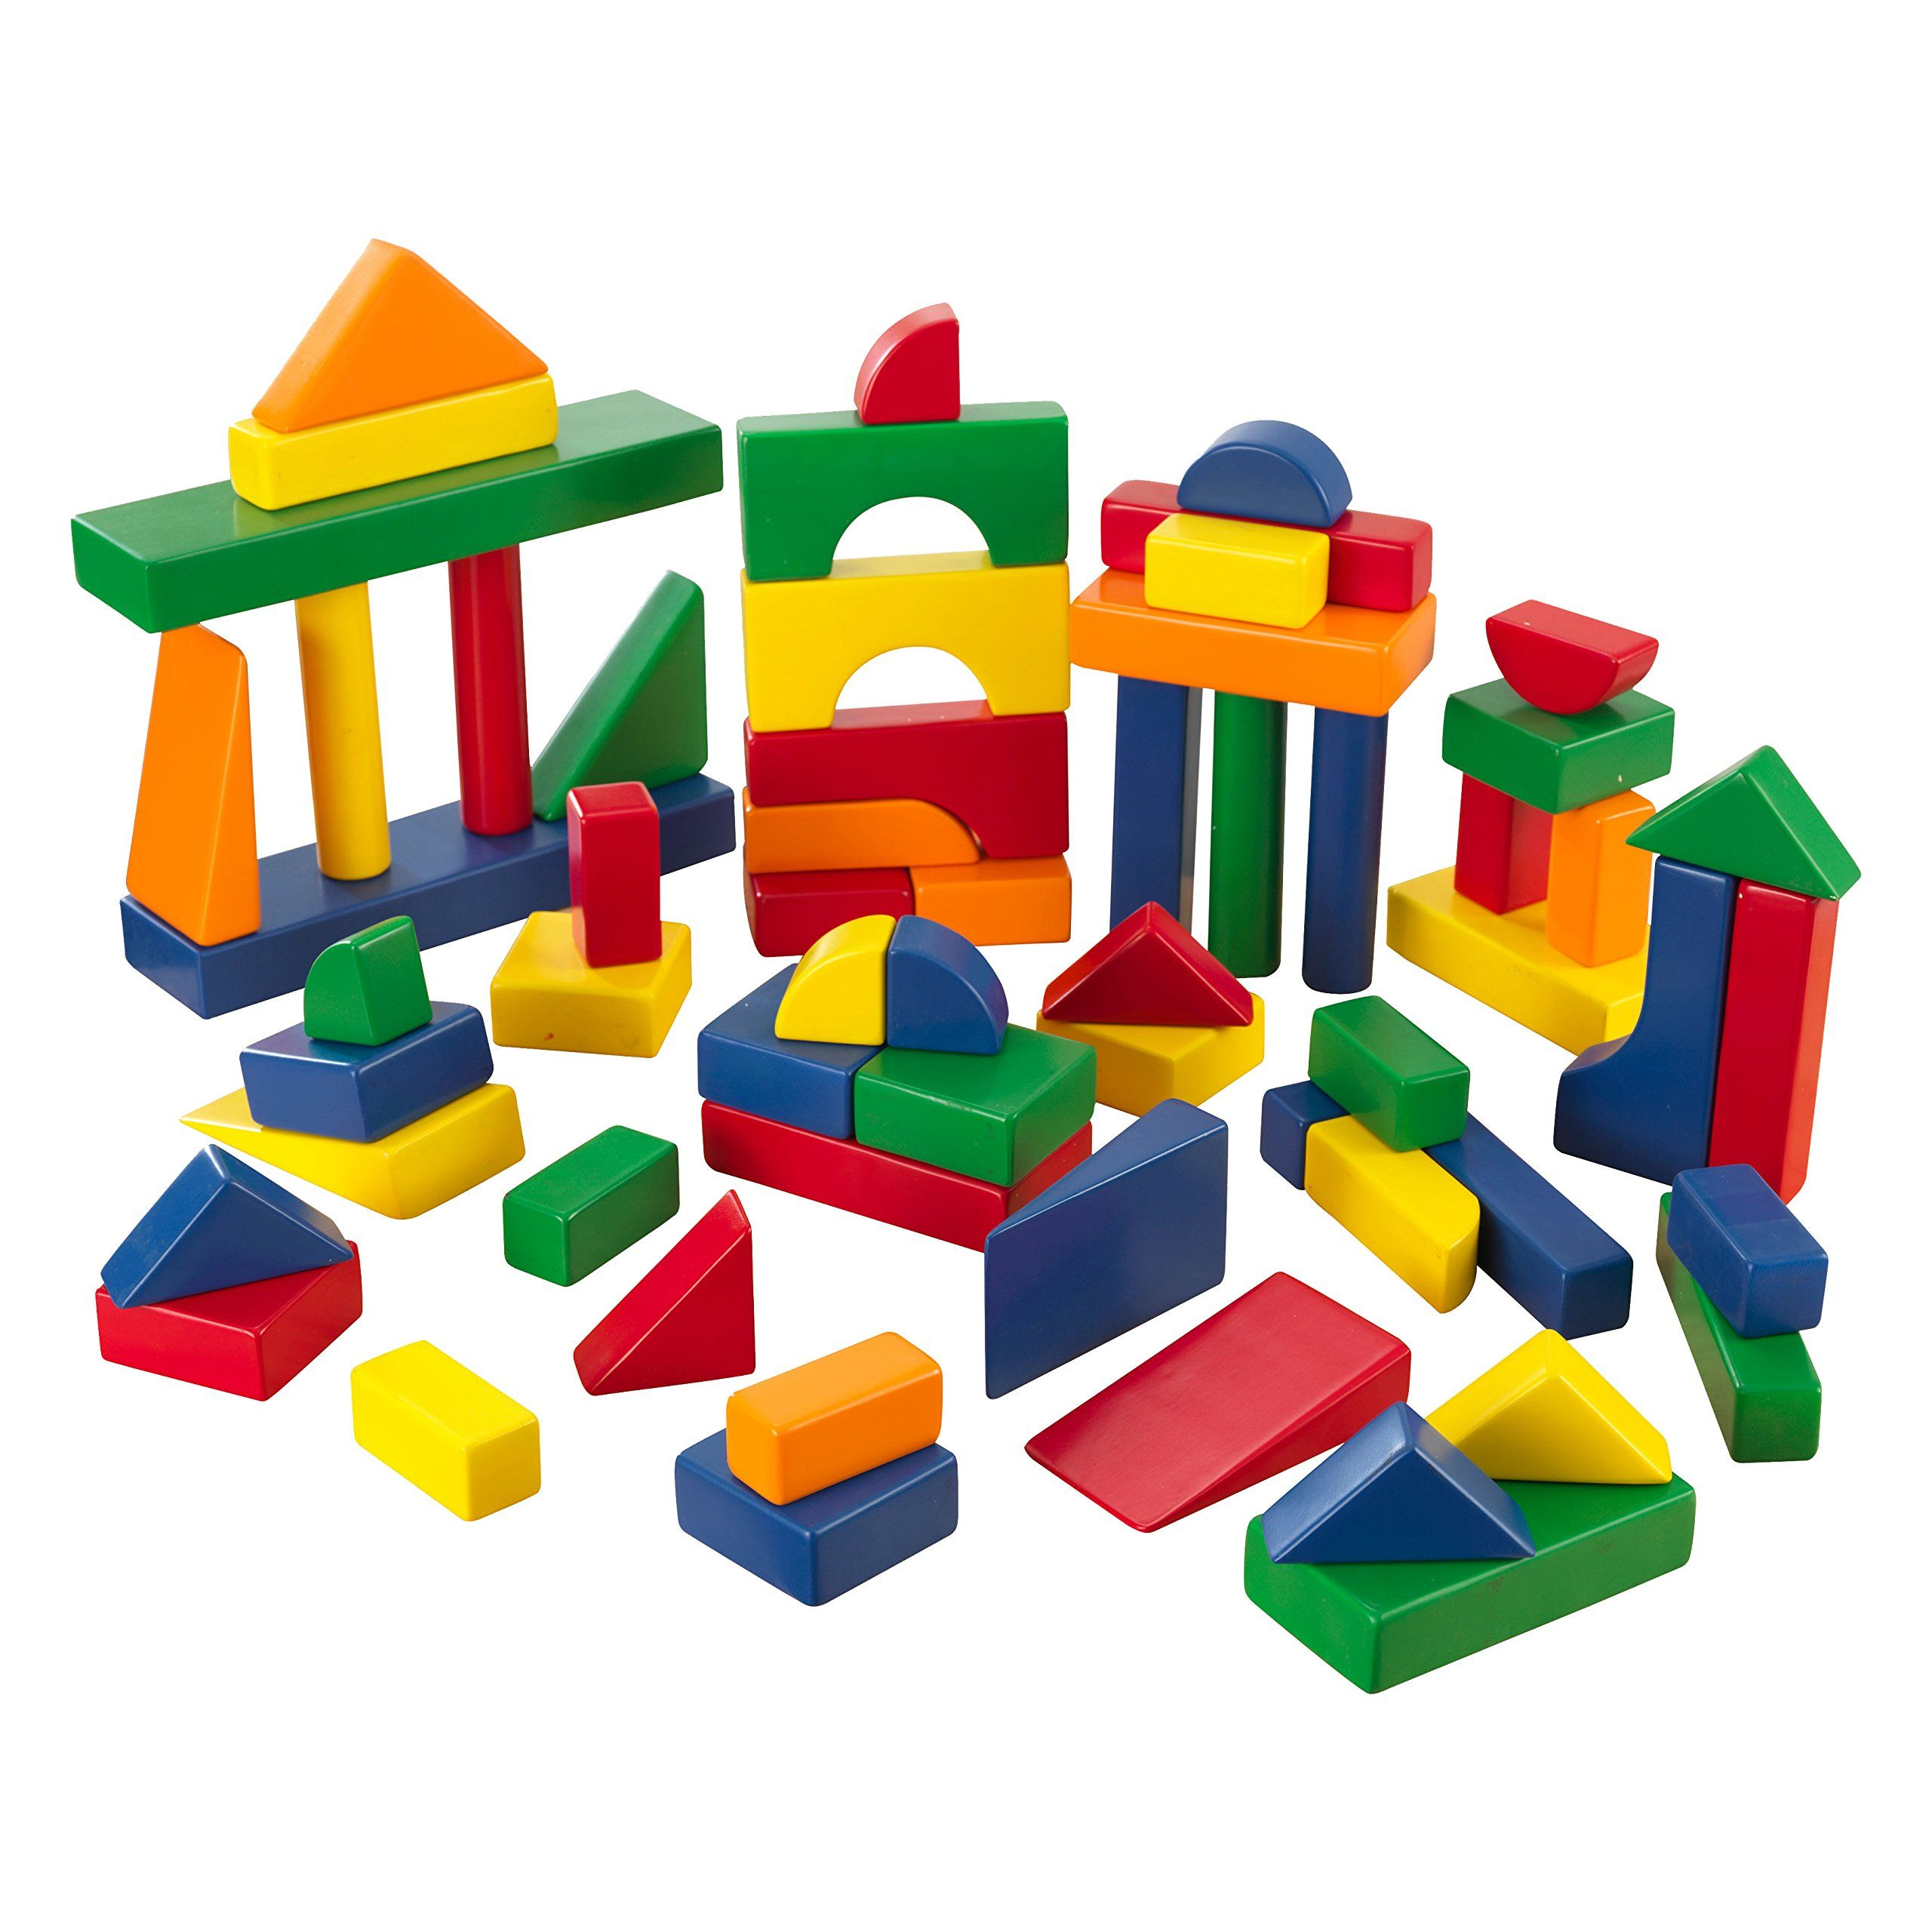 KidKraft 60 PC Wooden Block Set - Primary Colors. 60 primary colored blocks. No assembly required. Wooden Blocks.